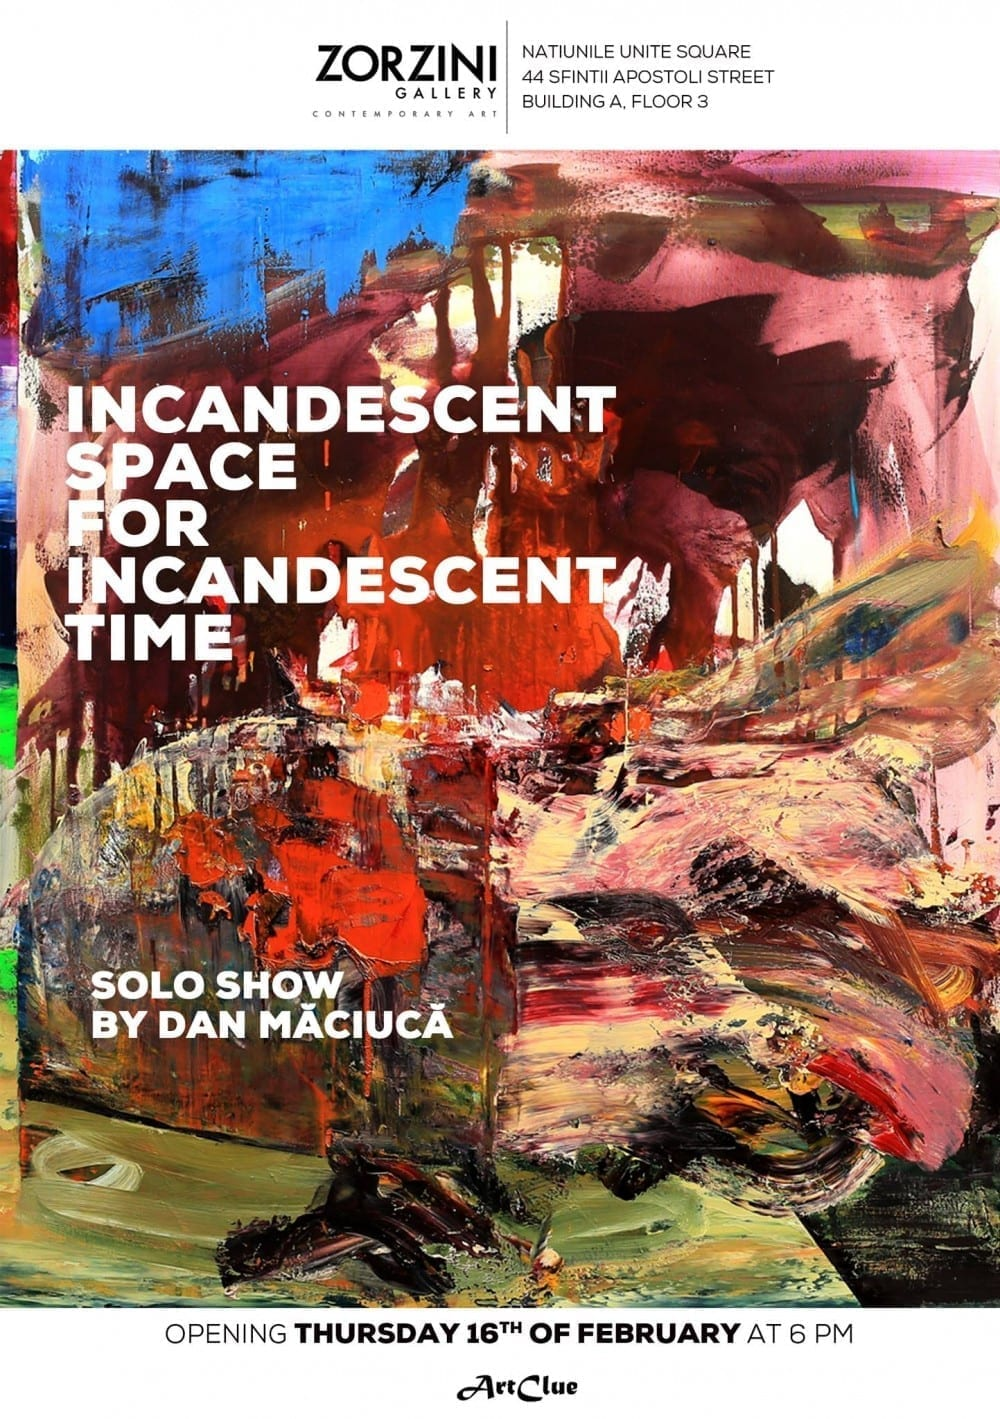 Incandescent Space for incandescent Time @ Zorzini Gallery